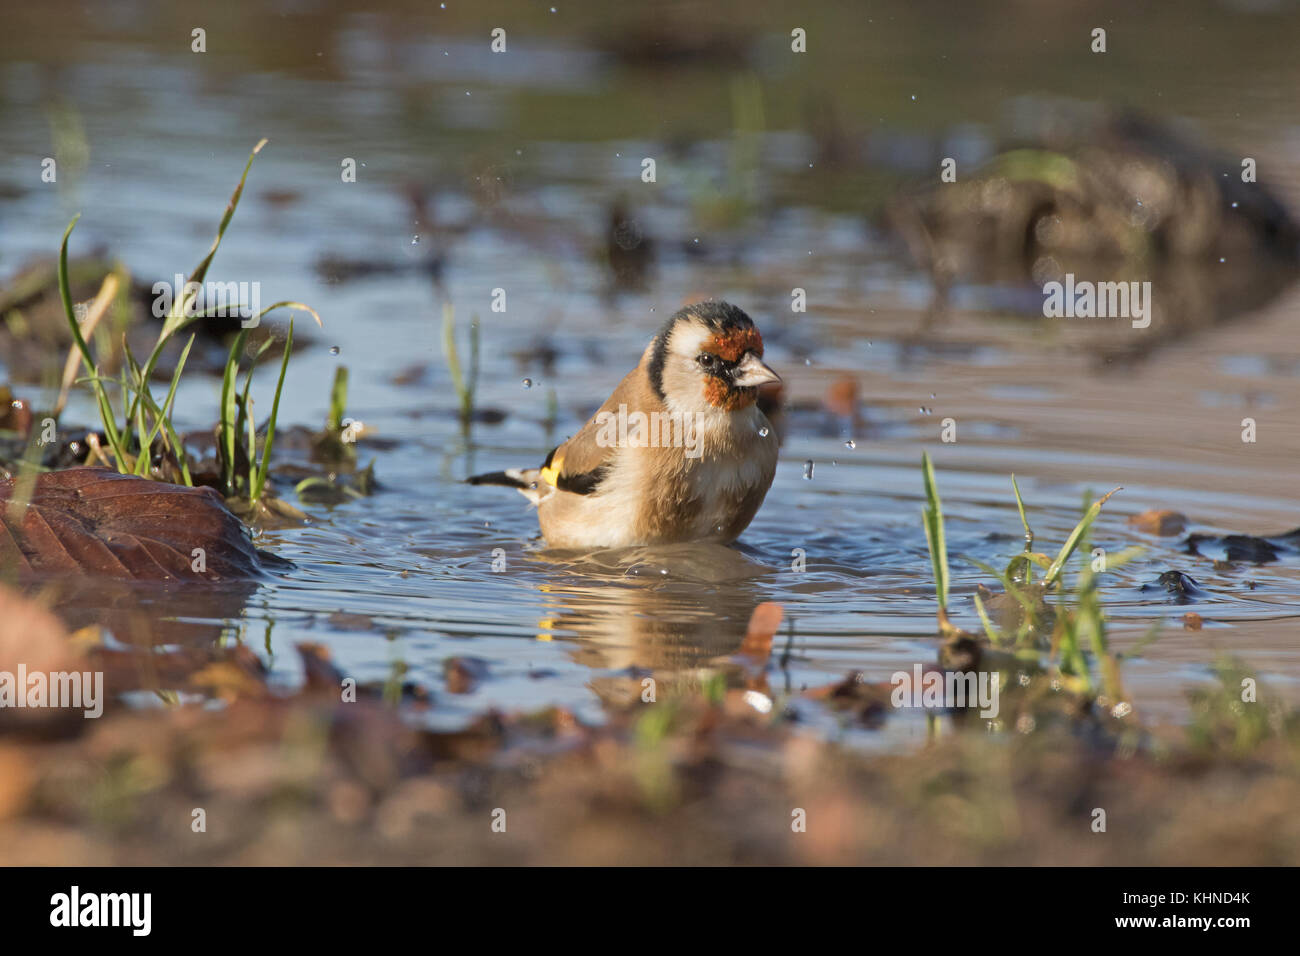 Goldfinch bathing in puddle - Stock Image